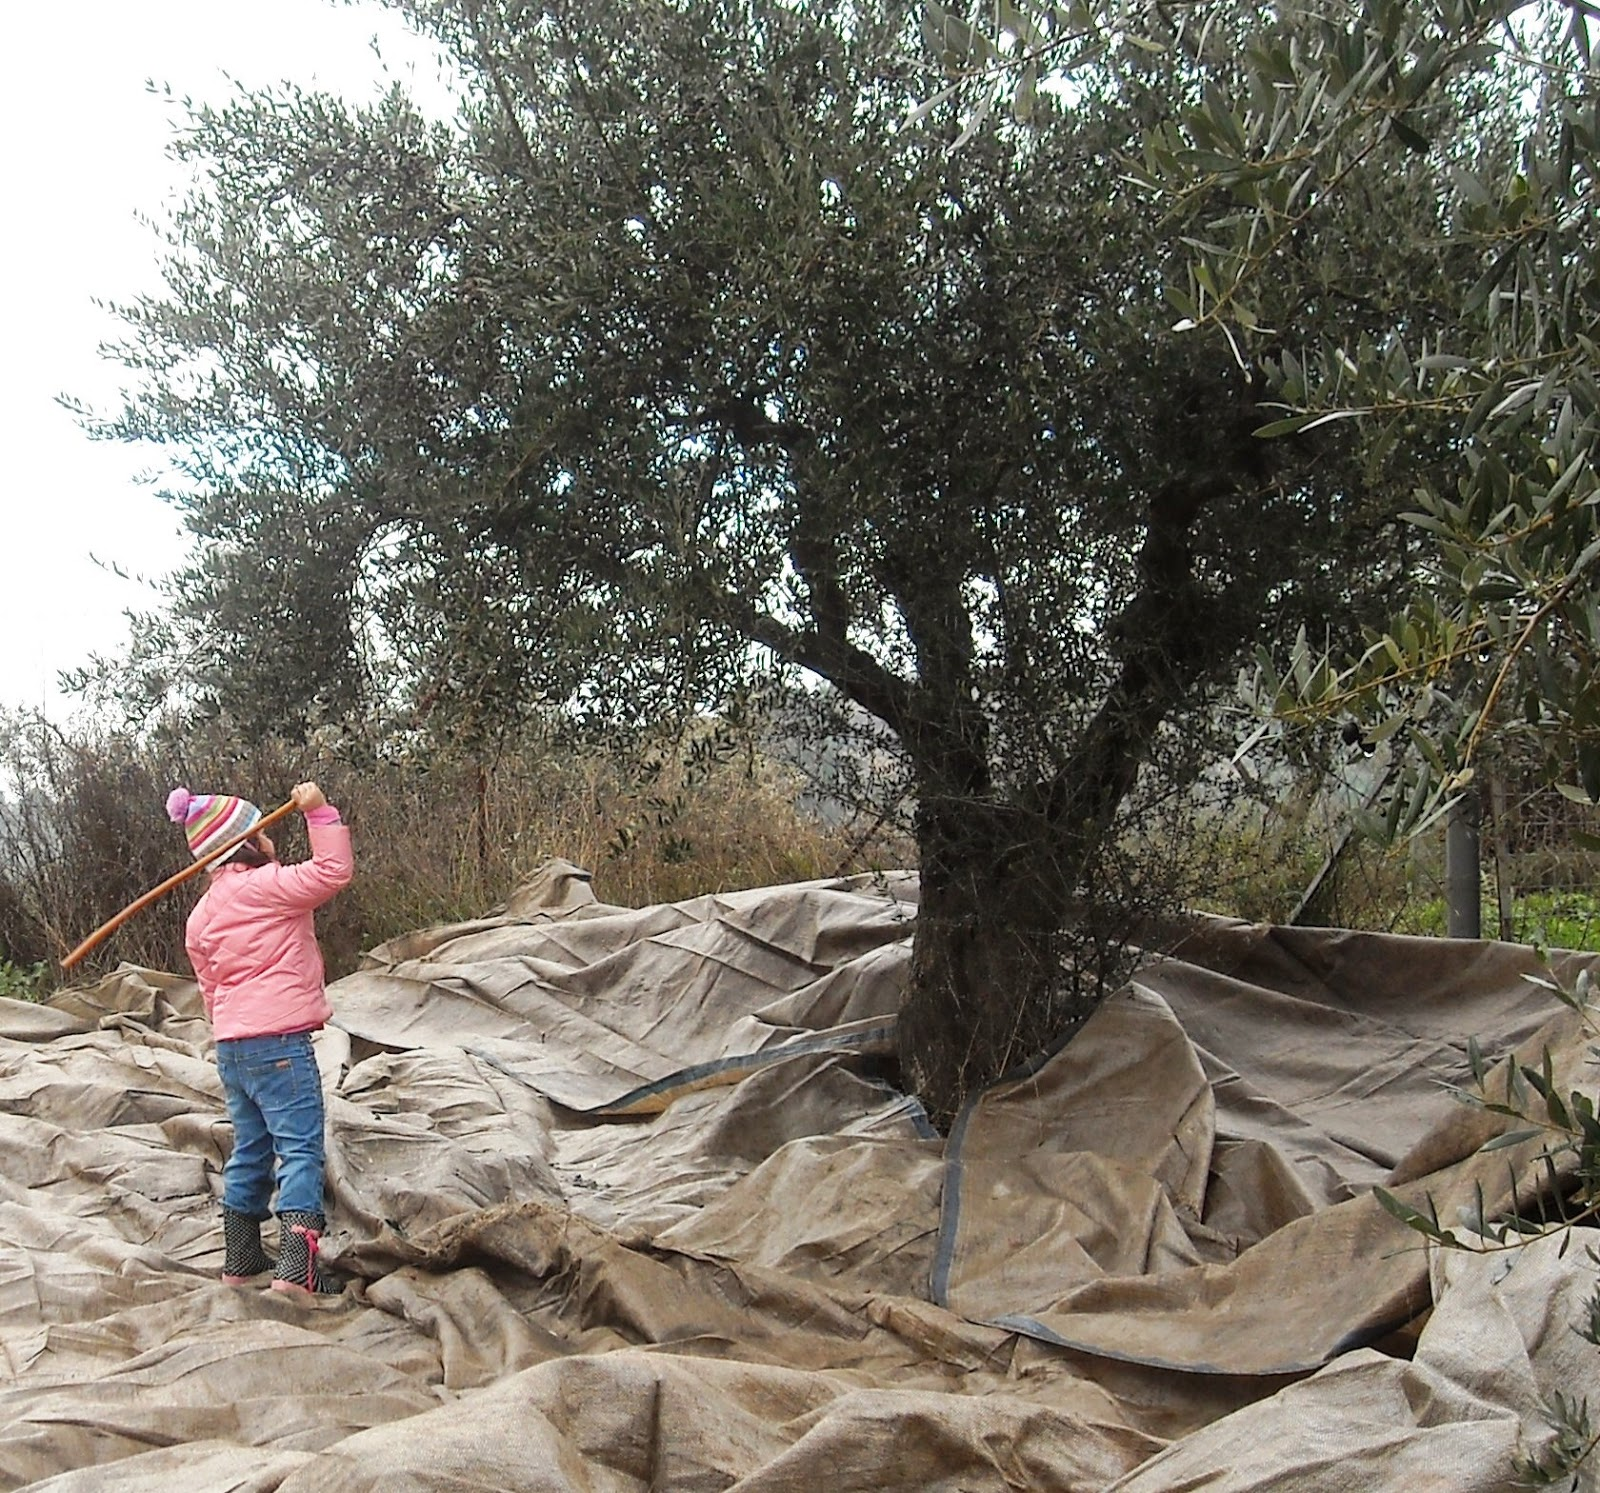 Olive harvesting for those who have a few hundred trees or less is a family affair in much of Greece